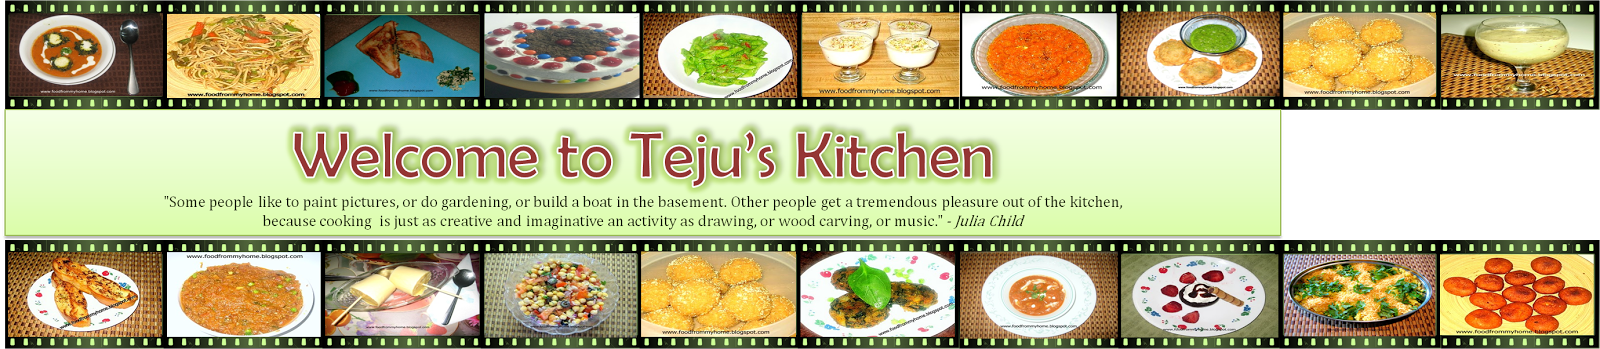 Welcome to Teju's Kitchen